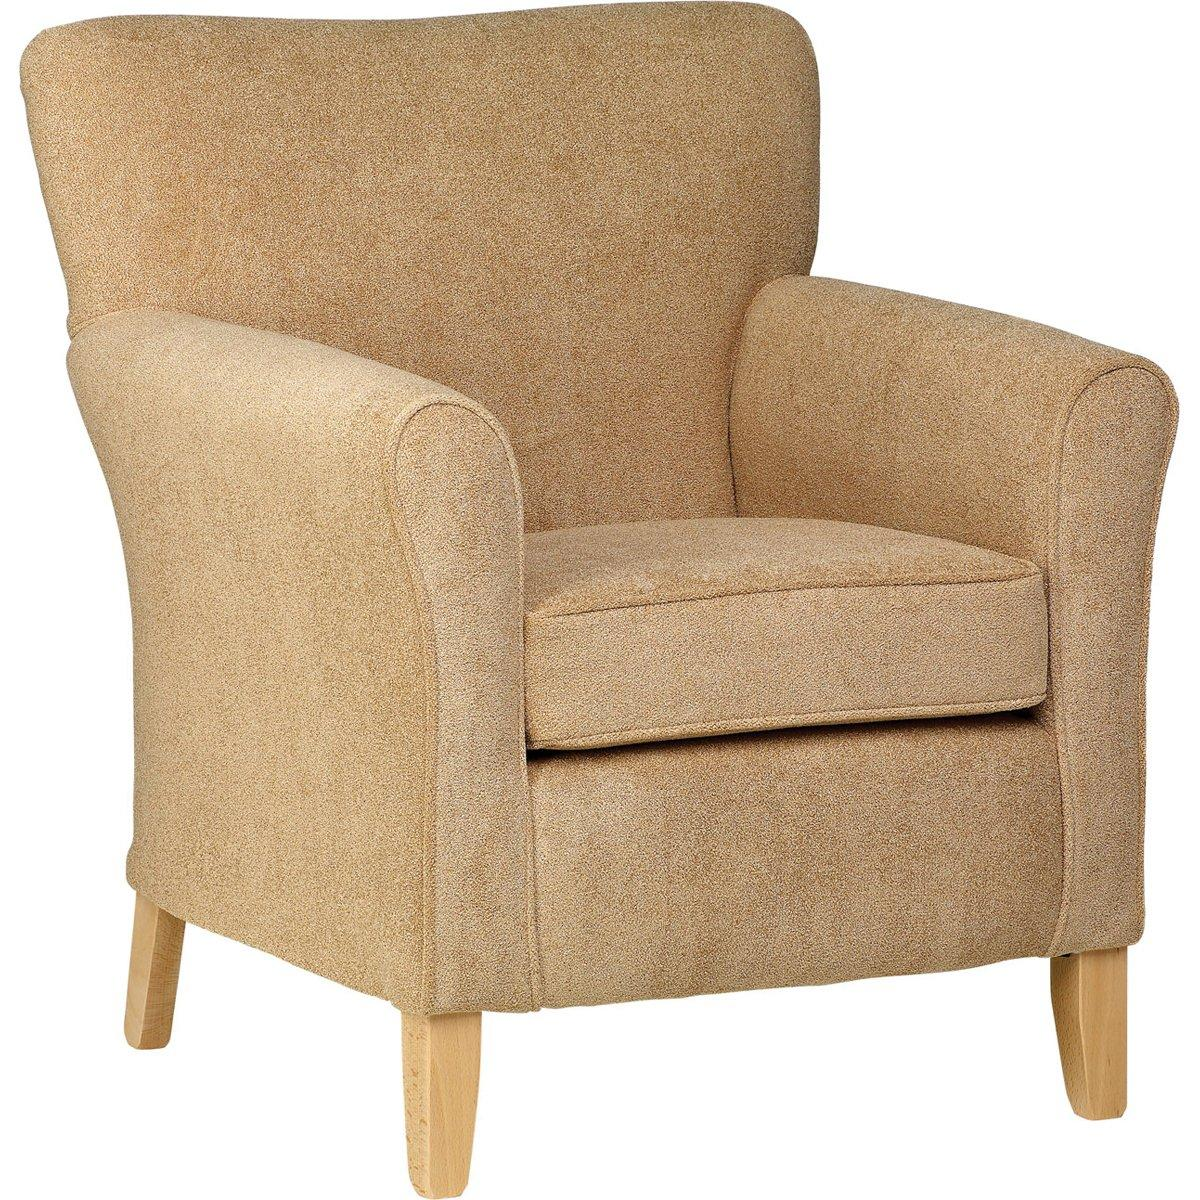 Shaldon Chair-288